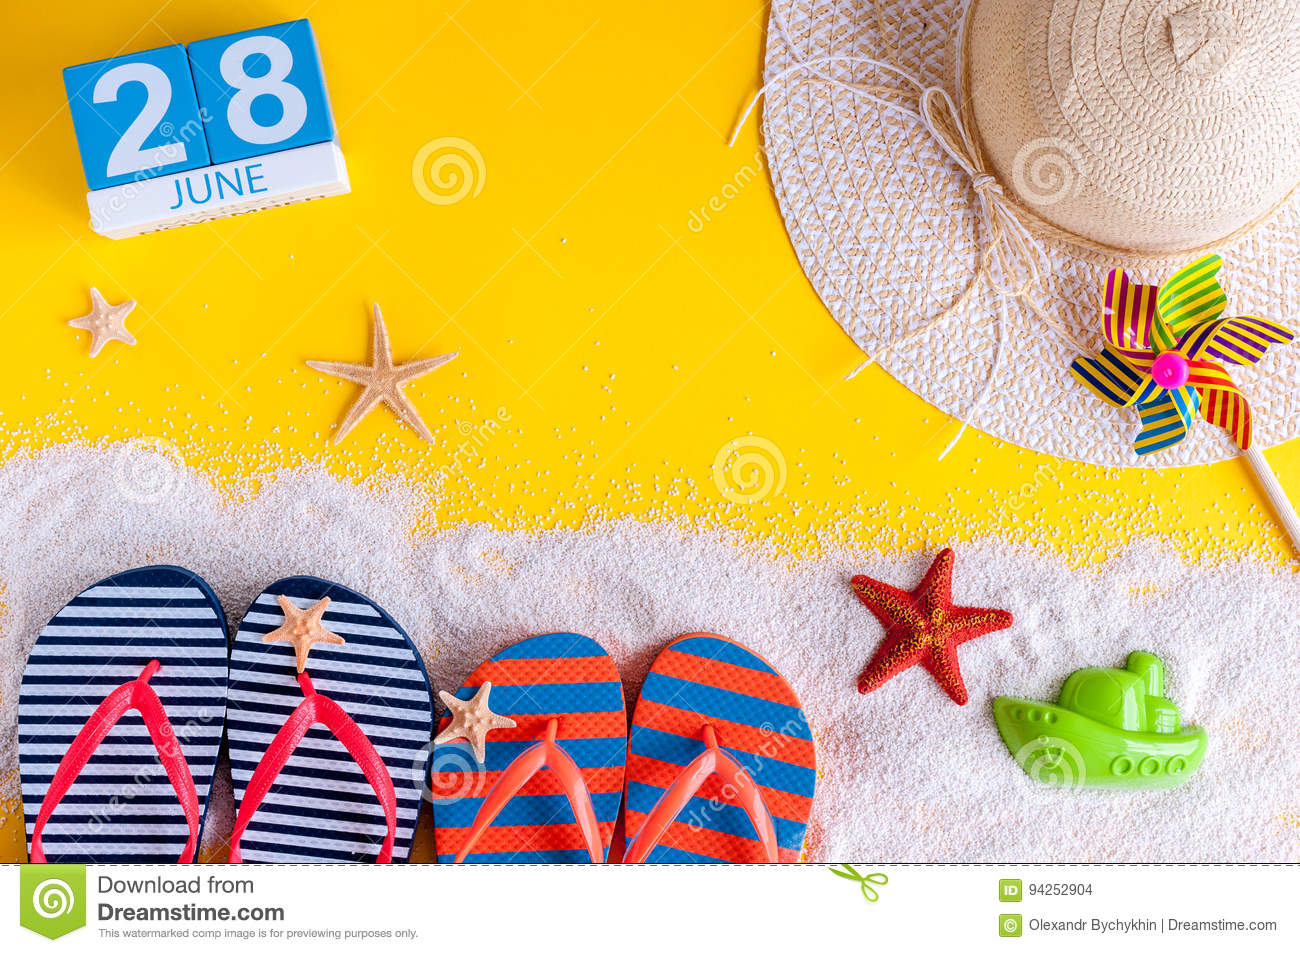 June 28th. Image of june 28 calendar on yellow sandy background with summer beach, traveler outfit and accessories